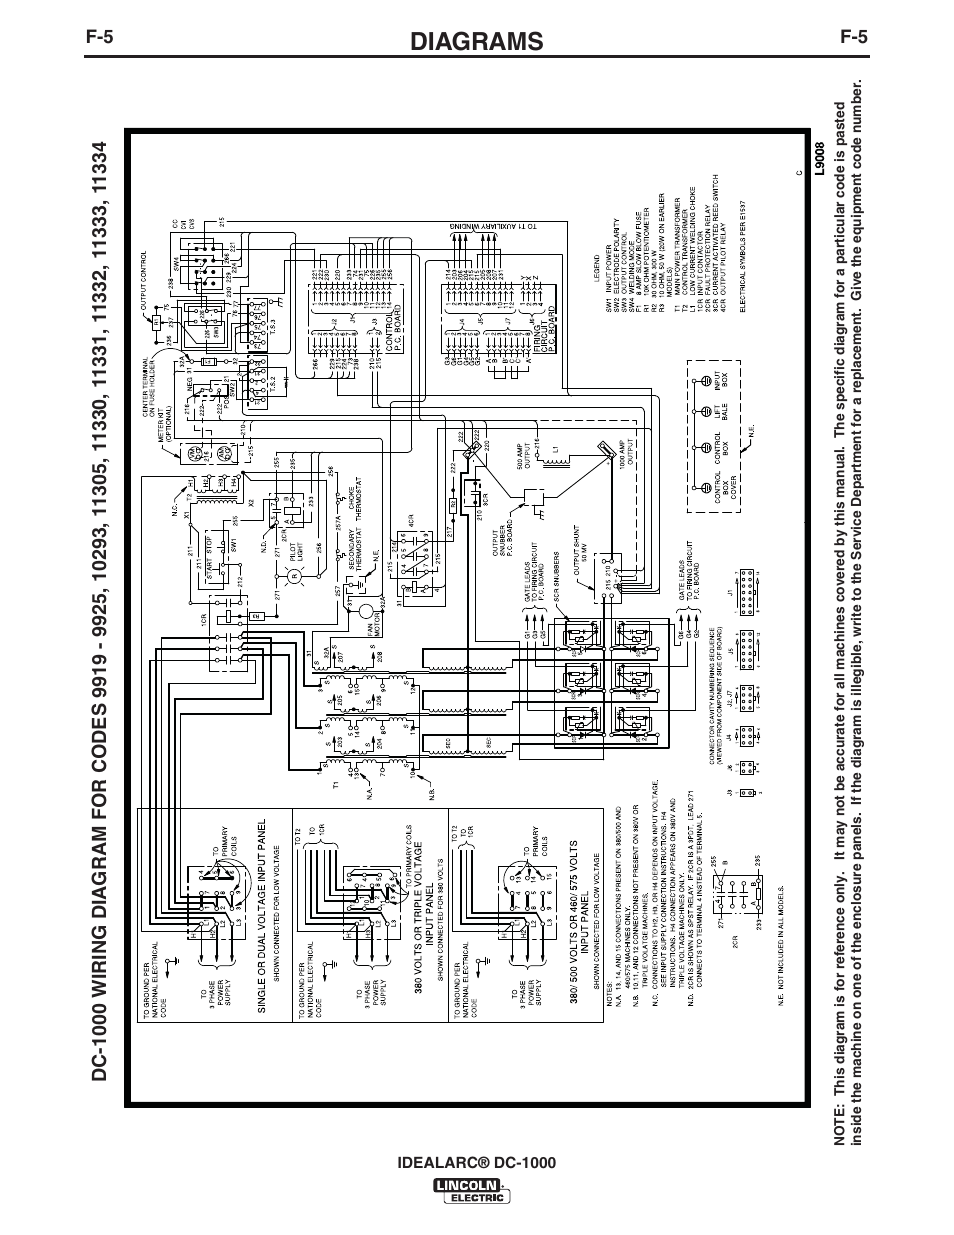 hight resolution of diagrams lincoln electric im420 idealarc dc 1000 user manual lincoln dc 1000 wiring diagram diagrams